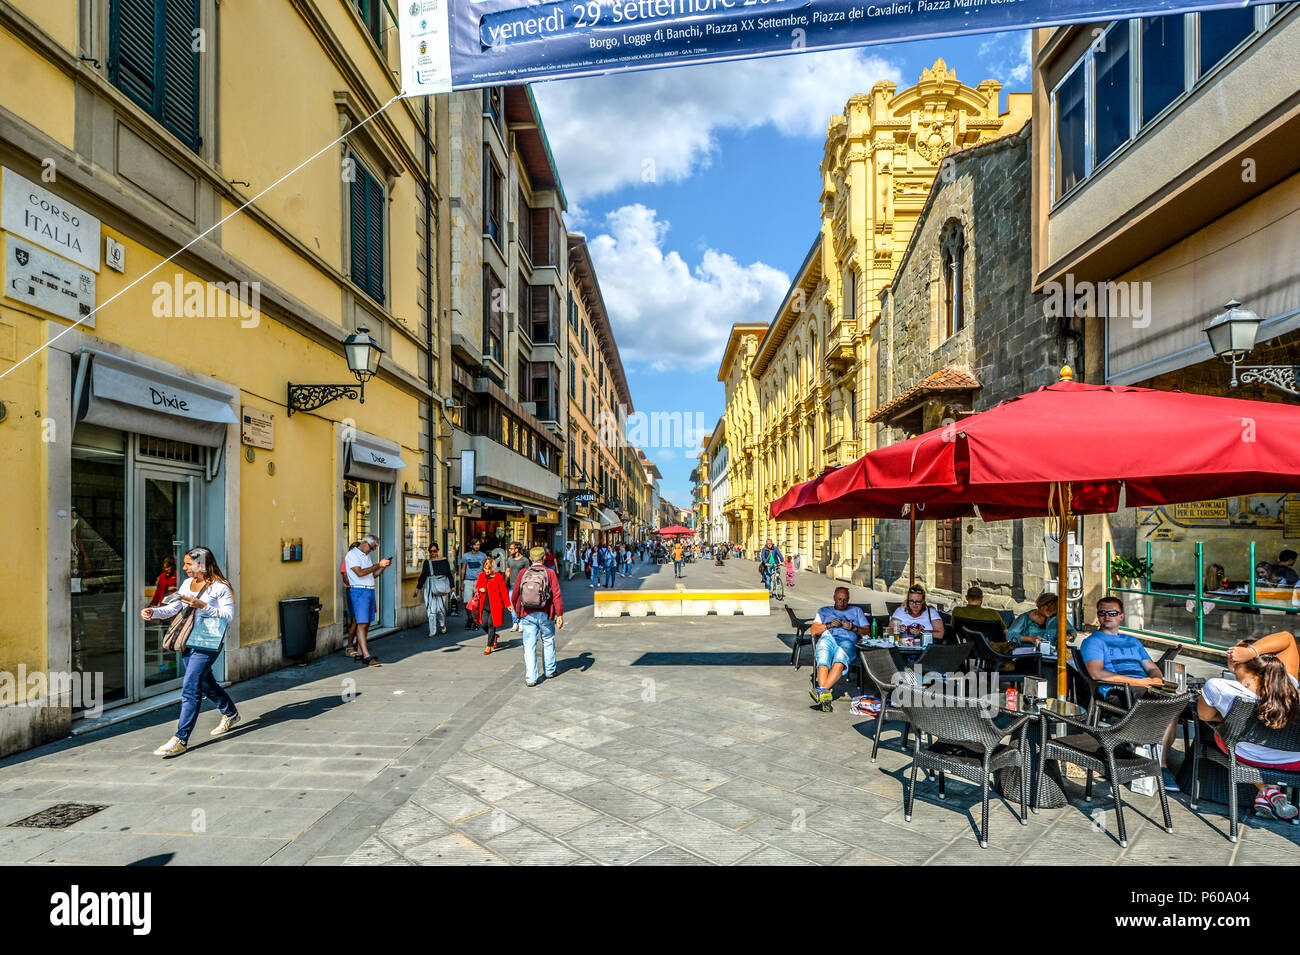 Tourists and locals enjoy a sunny day on the Corso Italia, the main shopping and dining street through the Tuscan city of Pisa, Italy - Stock Photo